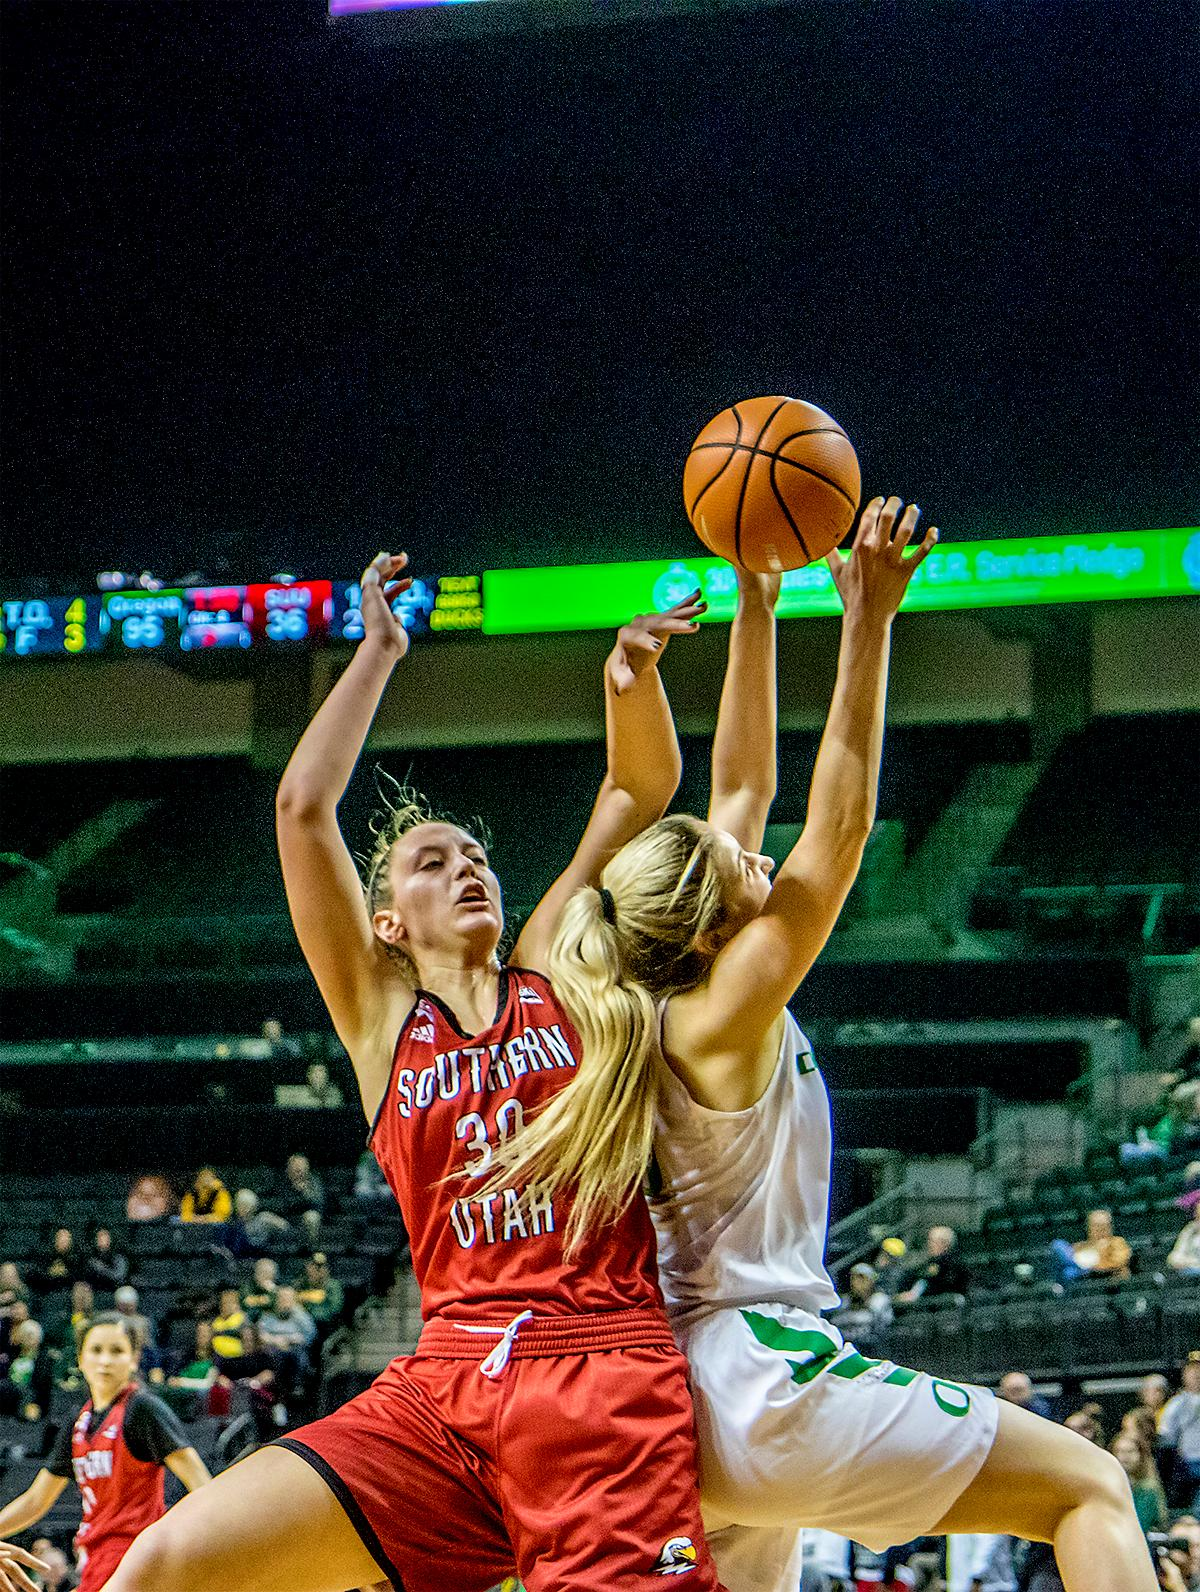 The Duck's Anneli Maley (#15) and the Thunderbird's Carlie Jones (#30) jump to try to catch a rebound. The University of Oregon Ducks women basketball team defeated the Southern Utah Thunderbirds 98-38 in Matthew Knight Arena Saturday afternoon. The Ducks had four players in double-digits: Ruthy Hebard with 13; Mallory McGwire with 10; Lexi Bando with 17 which included four three-pointers; and Sabrina Ionescu with 16 points. The Ducks overwhelmed the Thunderbirds, shooting 50% in field goals to South Utah's 26.8%, 53.8% in three-pointers to 12.5%, and 85.7% in free throws to 50%. The Ducks, with an overall record of 8-1, and coming into this game ranked 9th, will play their next home game against Ole Miss on December 17. Photo by August Frank, Oregon News Lab